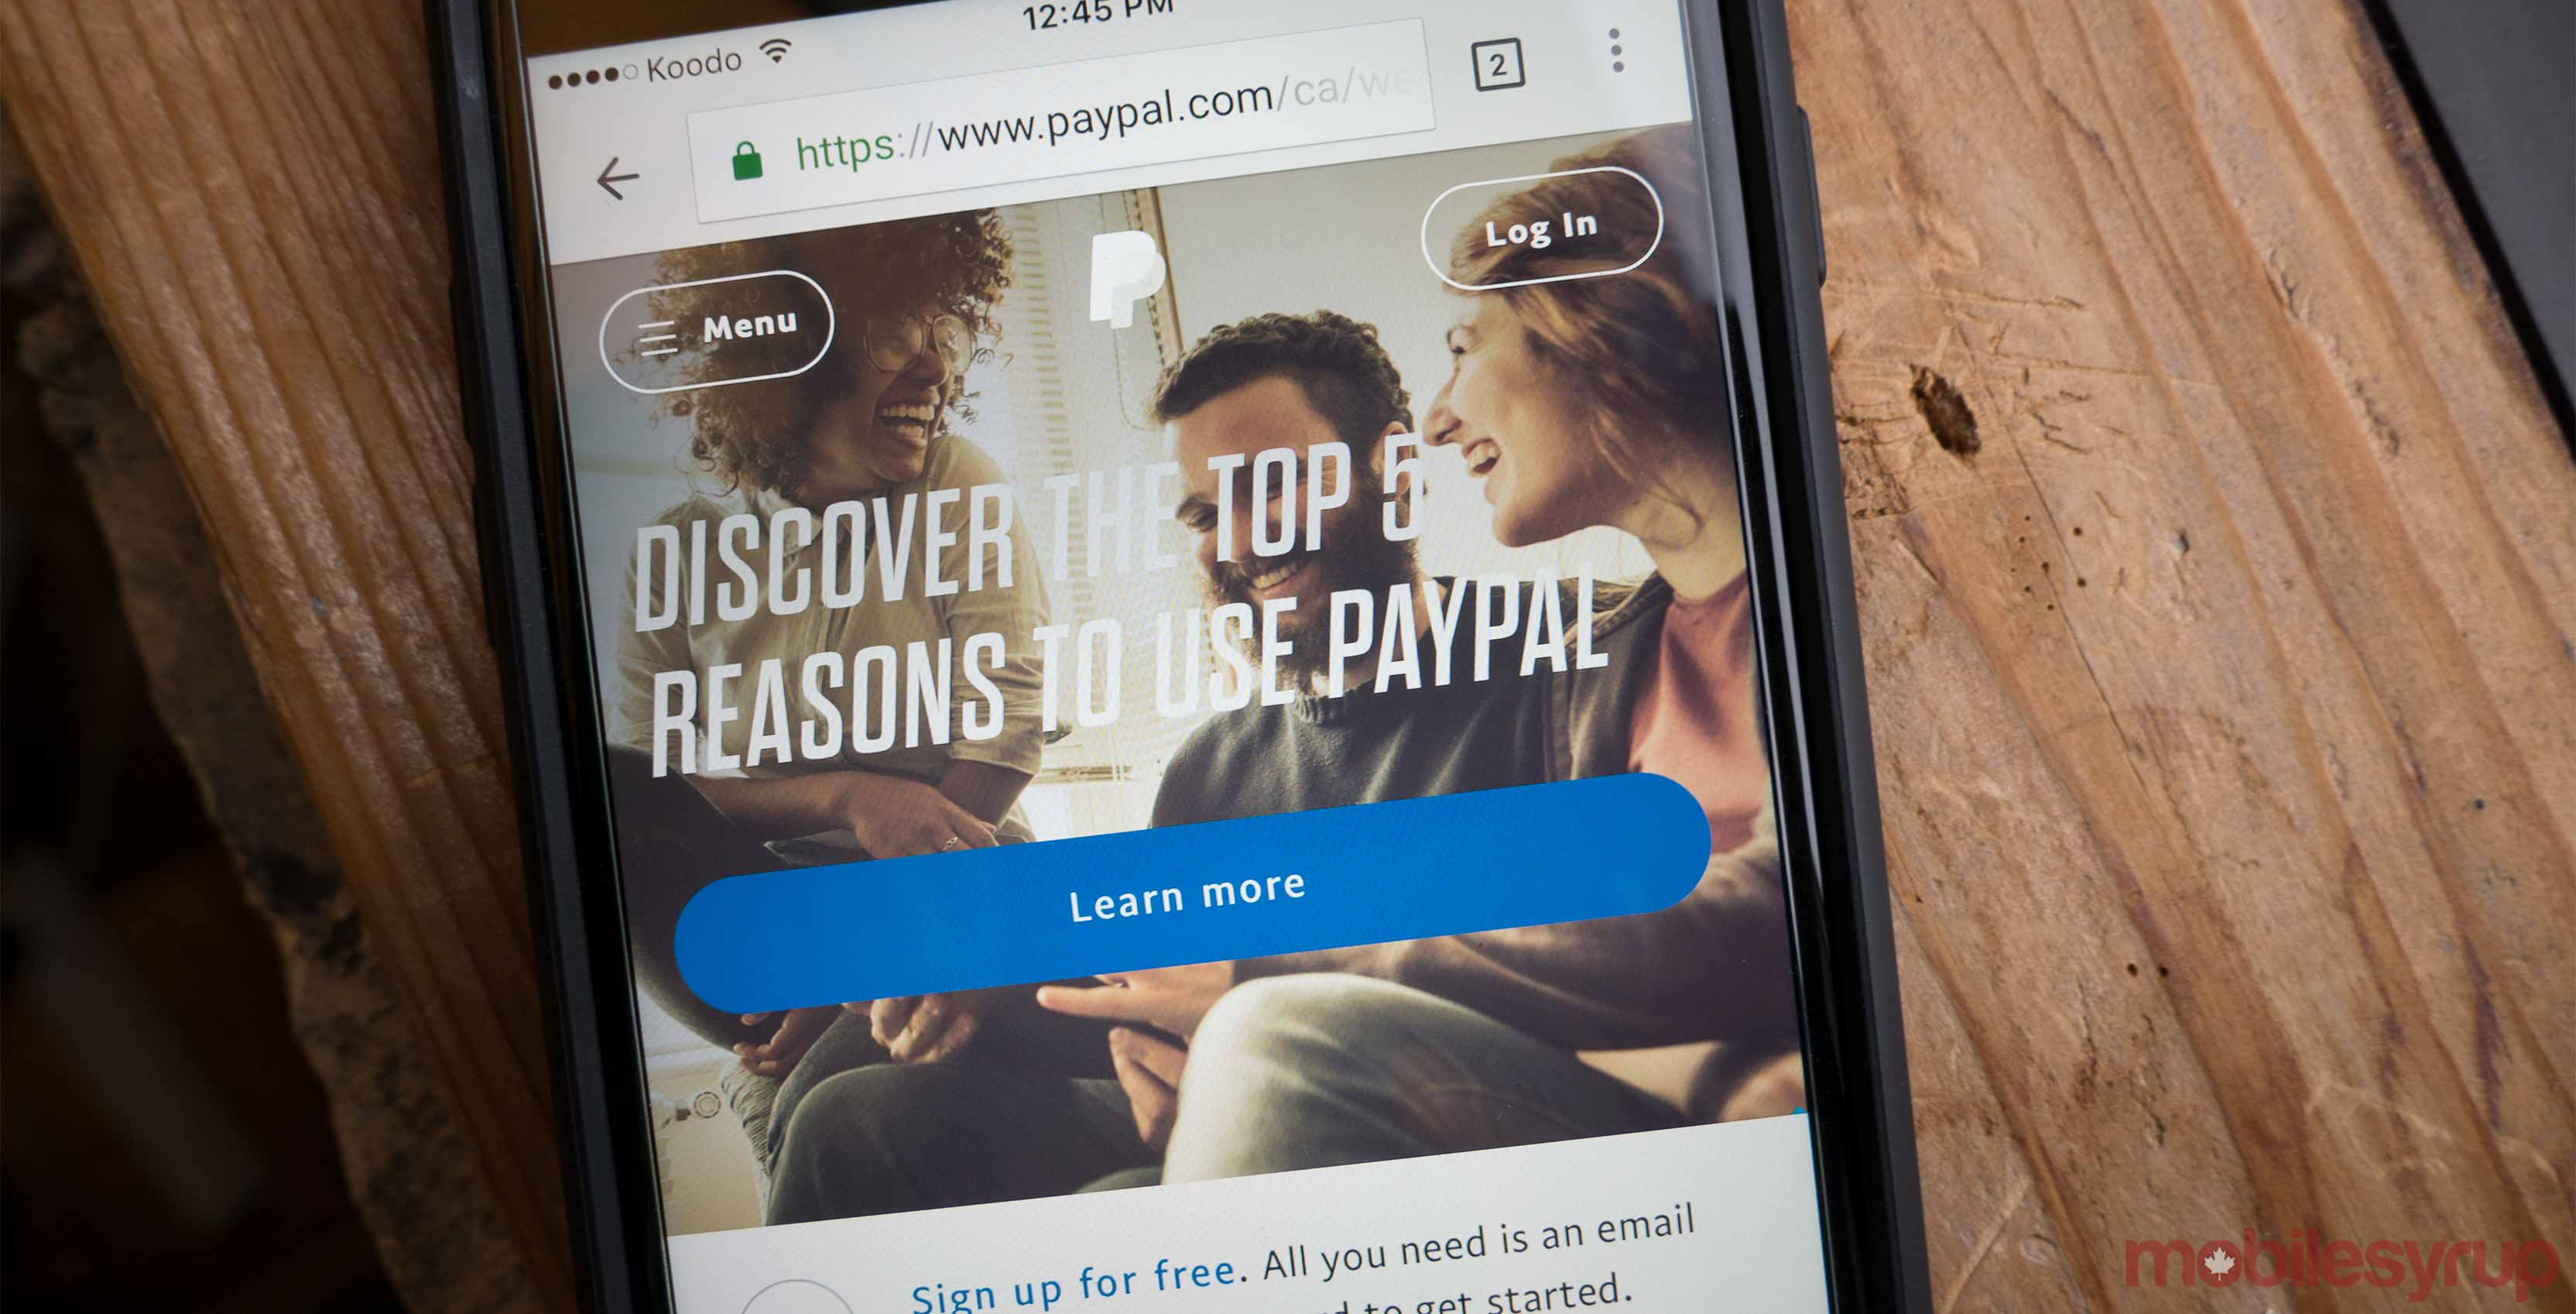 PayPal website on a smartphone